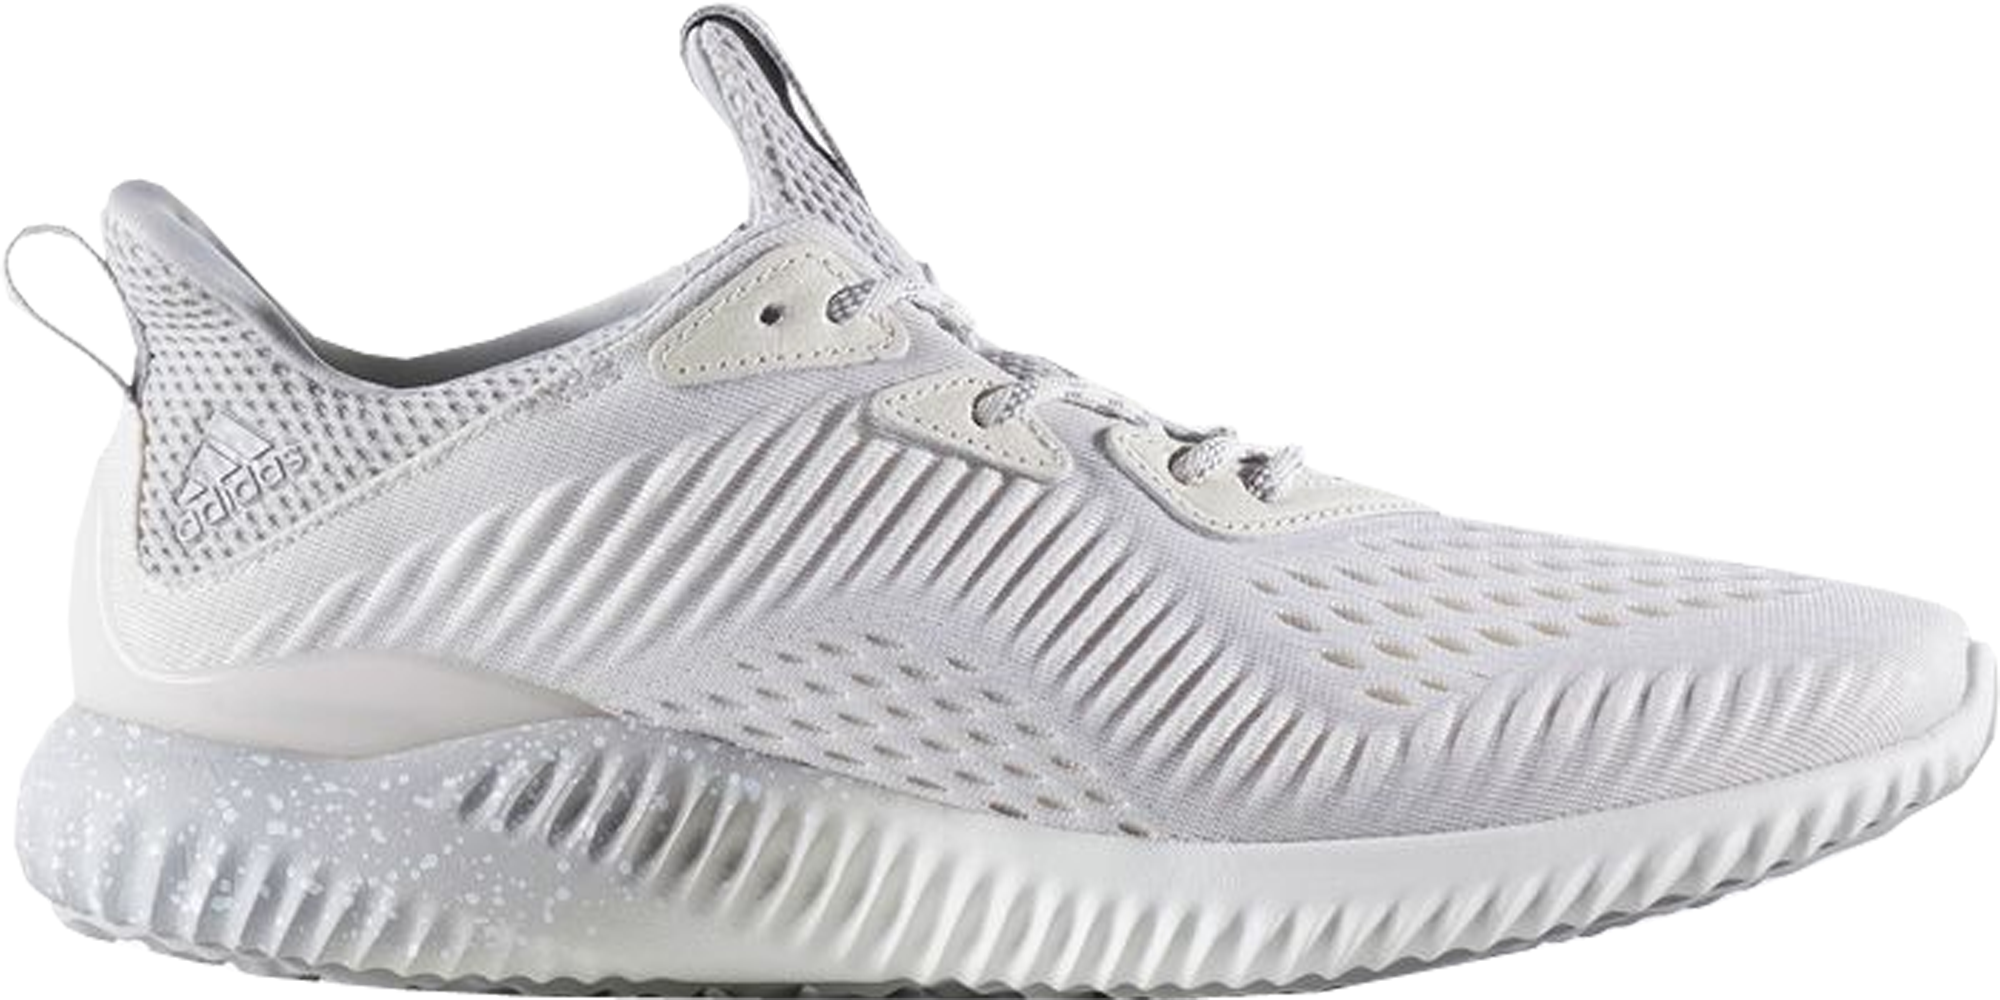 adidas Alphabounce Reigning Champ Core White